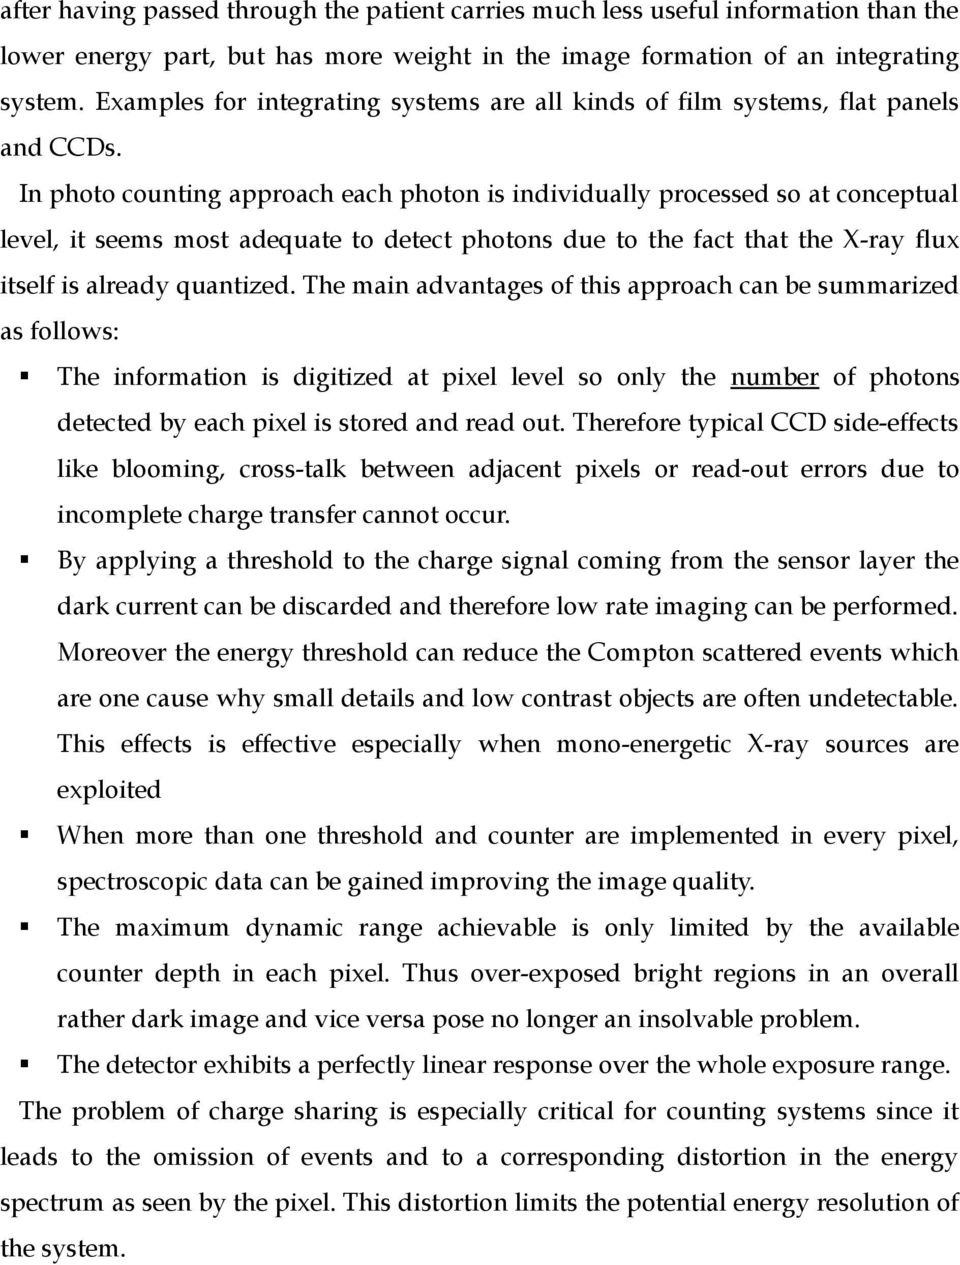 In photo counting approach each photon is individually processed so at conceptual level, it seems most adequate to detect photons due to the fact that the X-ray flux itself is already quantized.